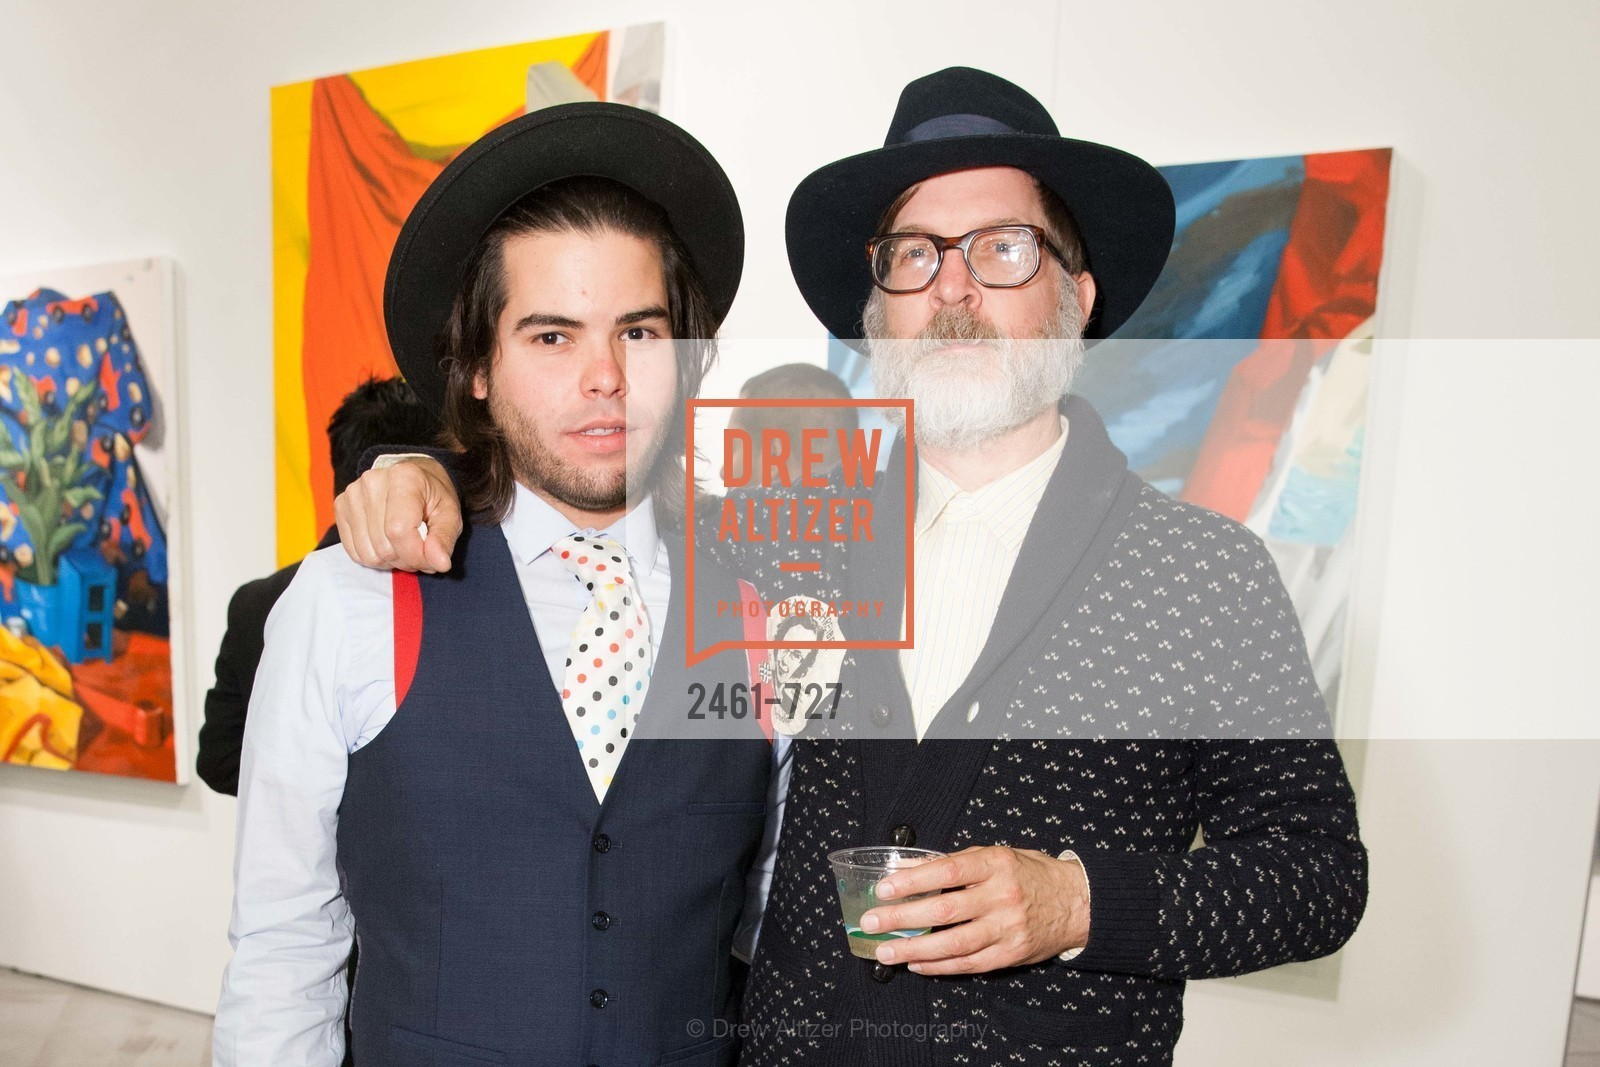 Alan Franco, Keith Bode, SAN FRANCISCO ART INSTITUTE Gala Honoring Art Visionary and Advocate ROSELYNE CHROMAN SWIG, US, May 14th, 2015,Drew Altizer, Drew Altizer Photography, full-service agency, private events, San Francisco photographer, photographer california